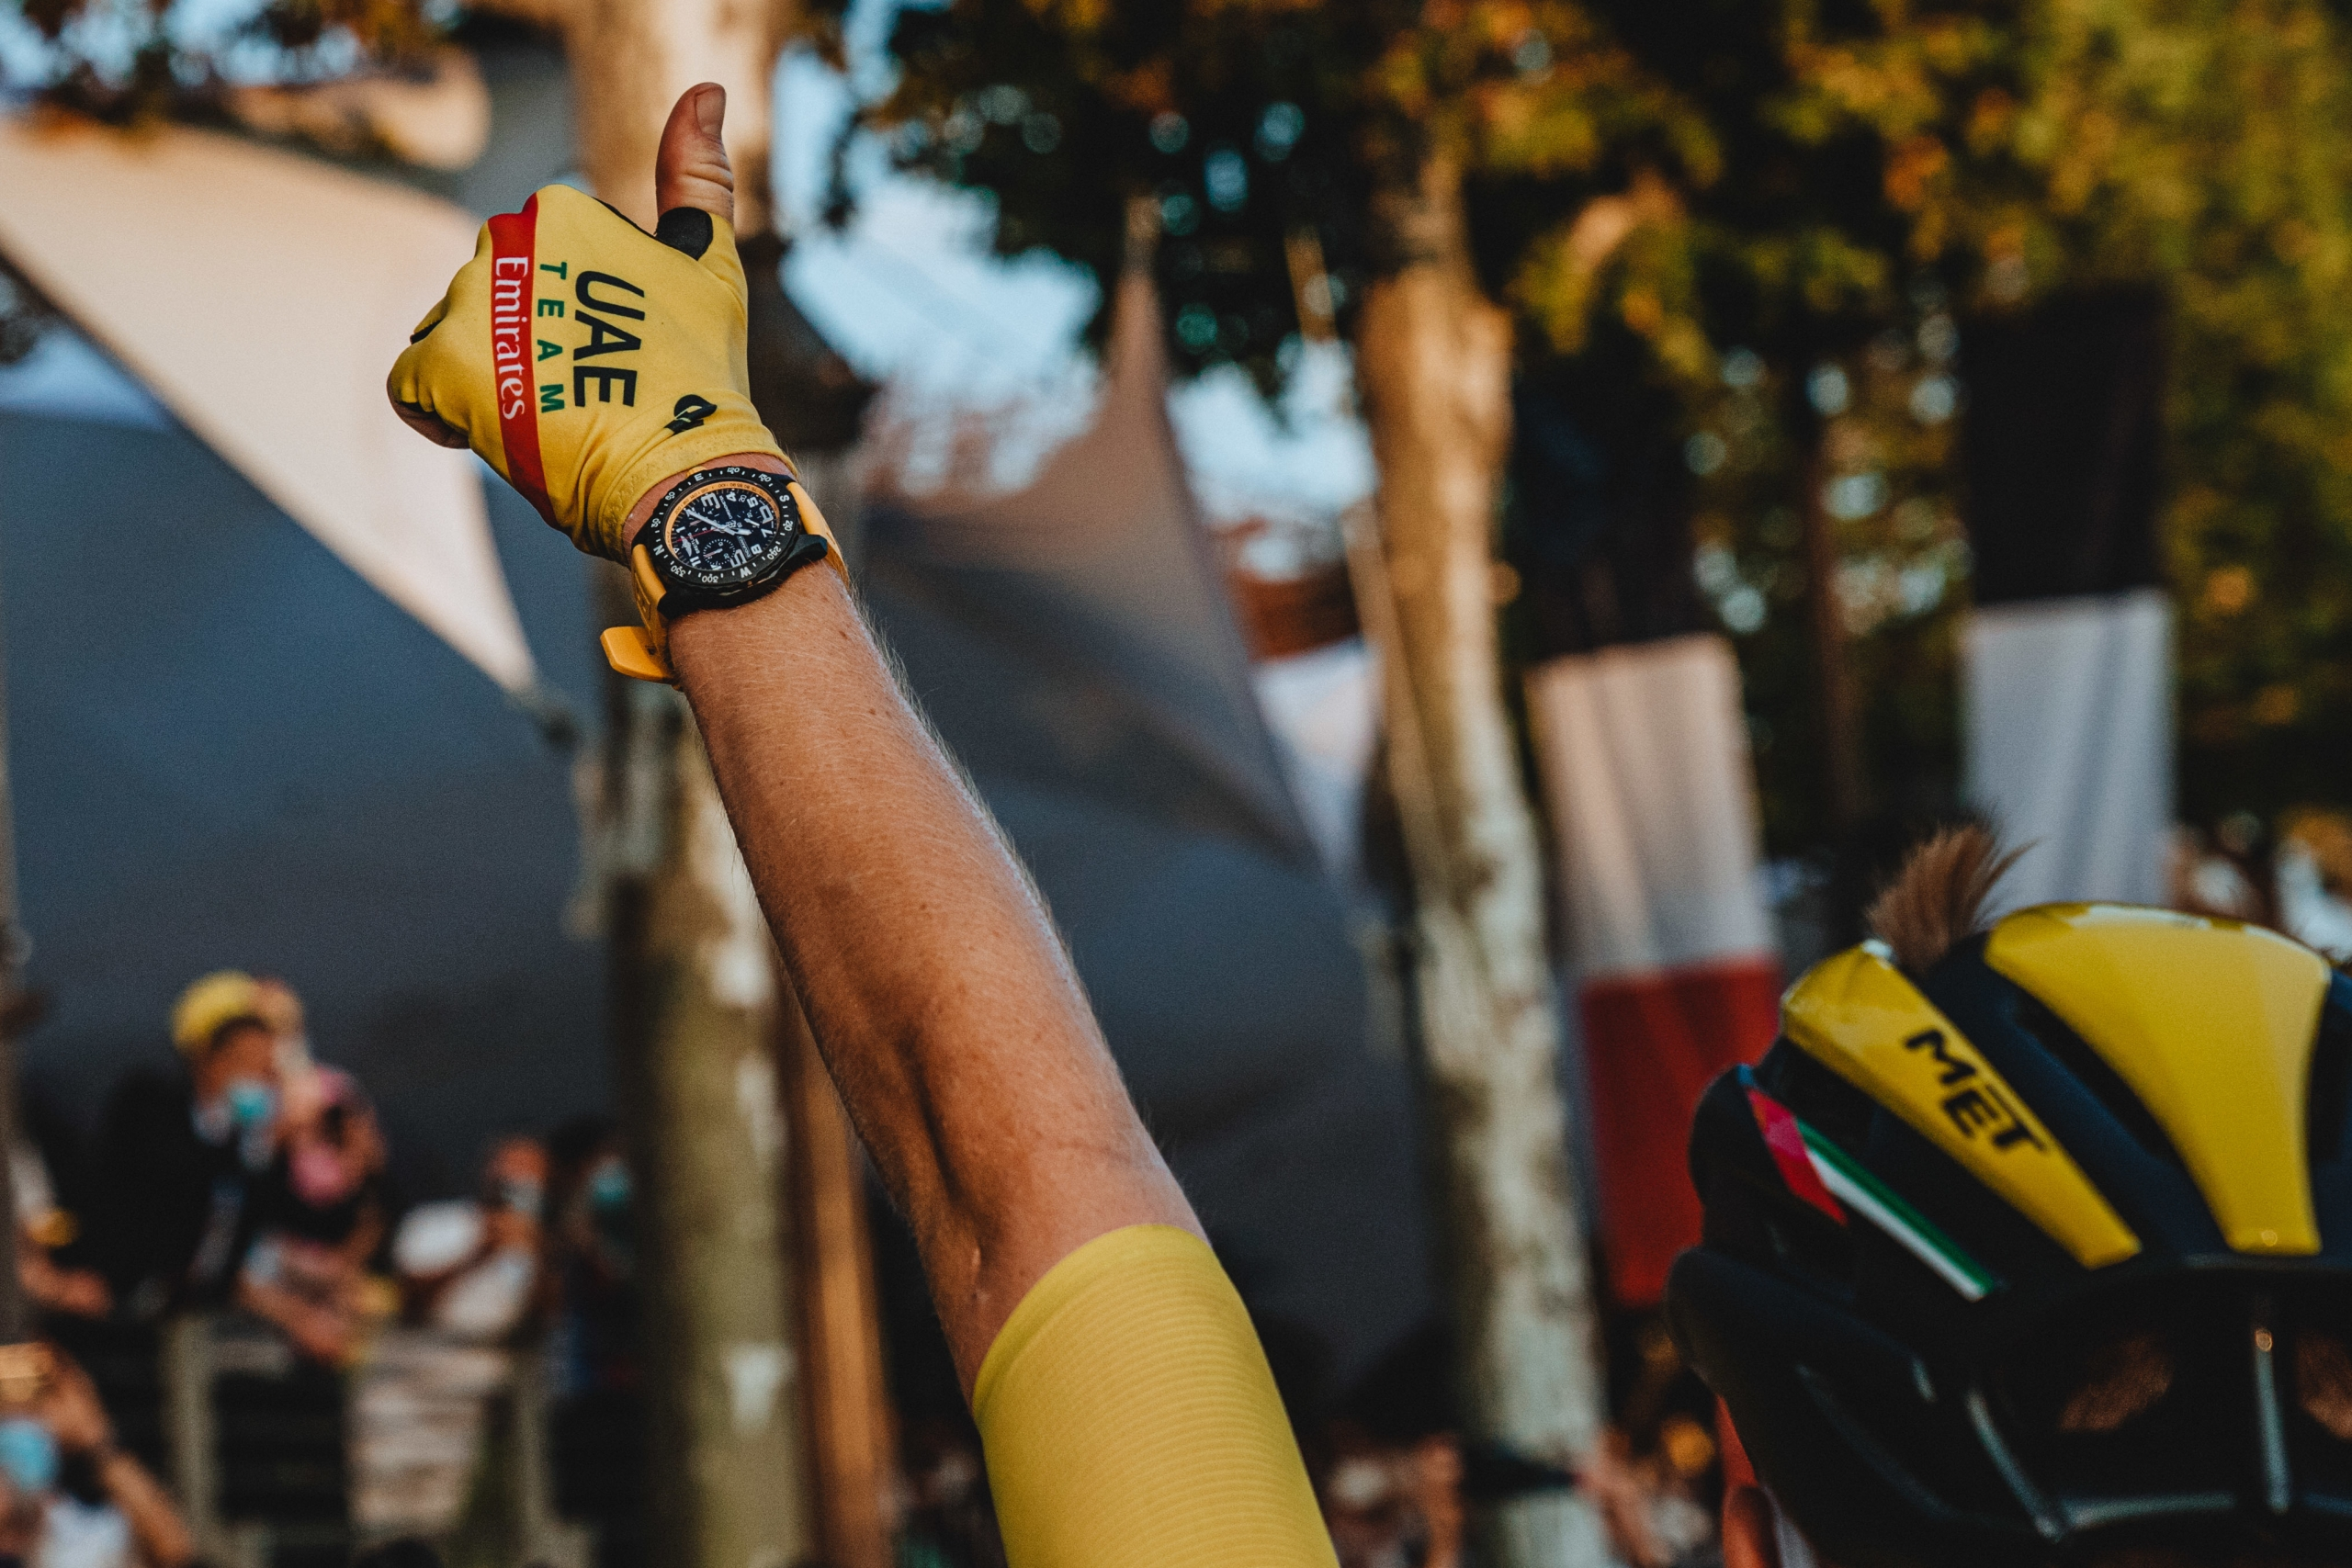 Tadej Pogačar wears a yellow Breitling Endurance Pro during the final stage of the Tour de France